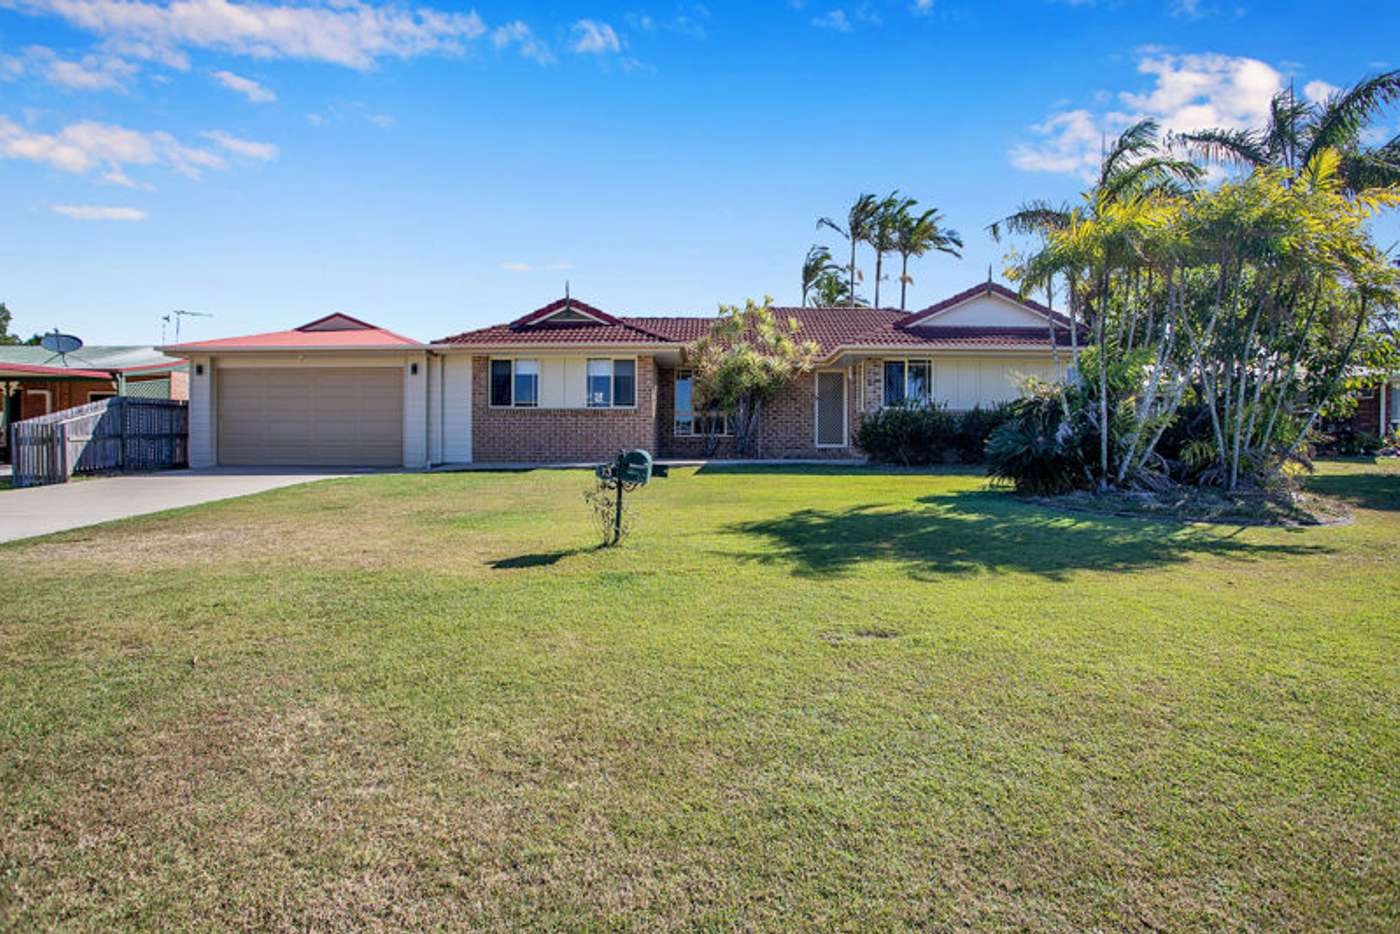 Main view of Homely acreageSemiRural listing, 13 Argyle Crt, Beaconsfield QLD 4740